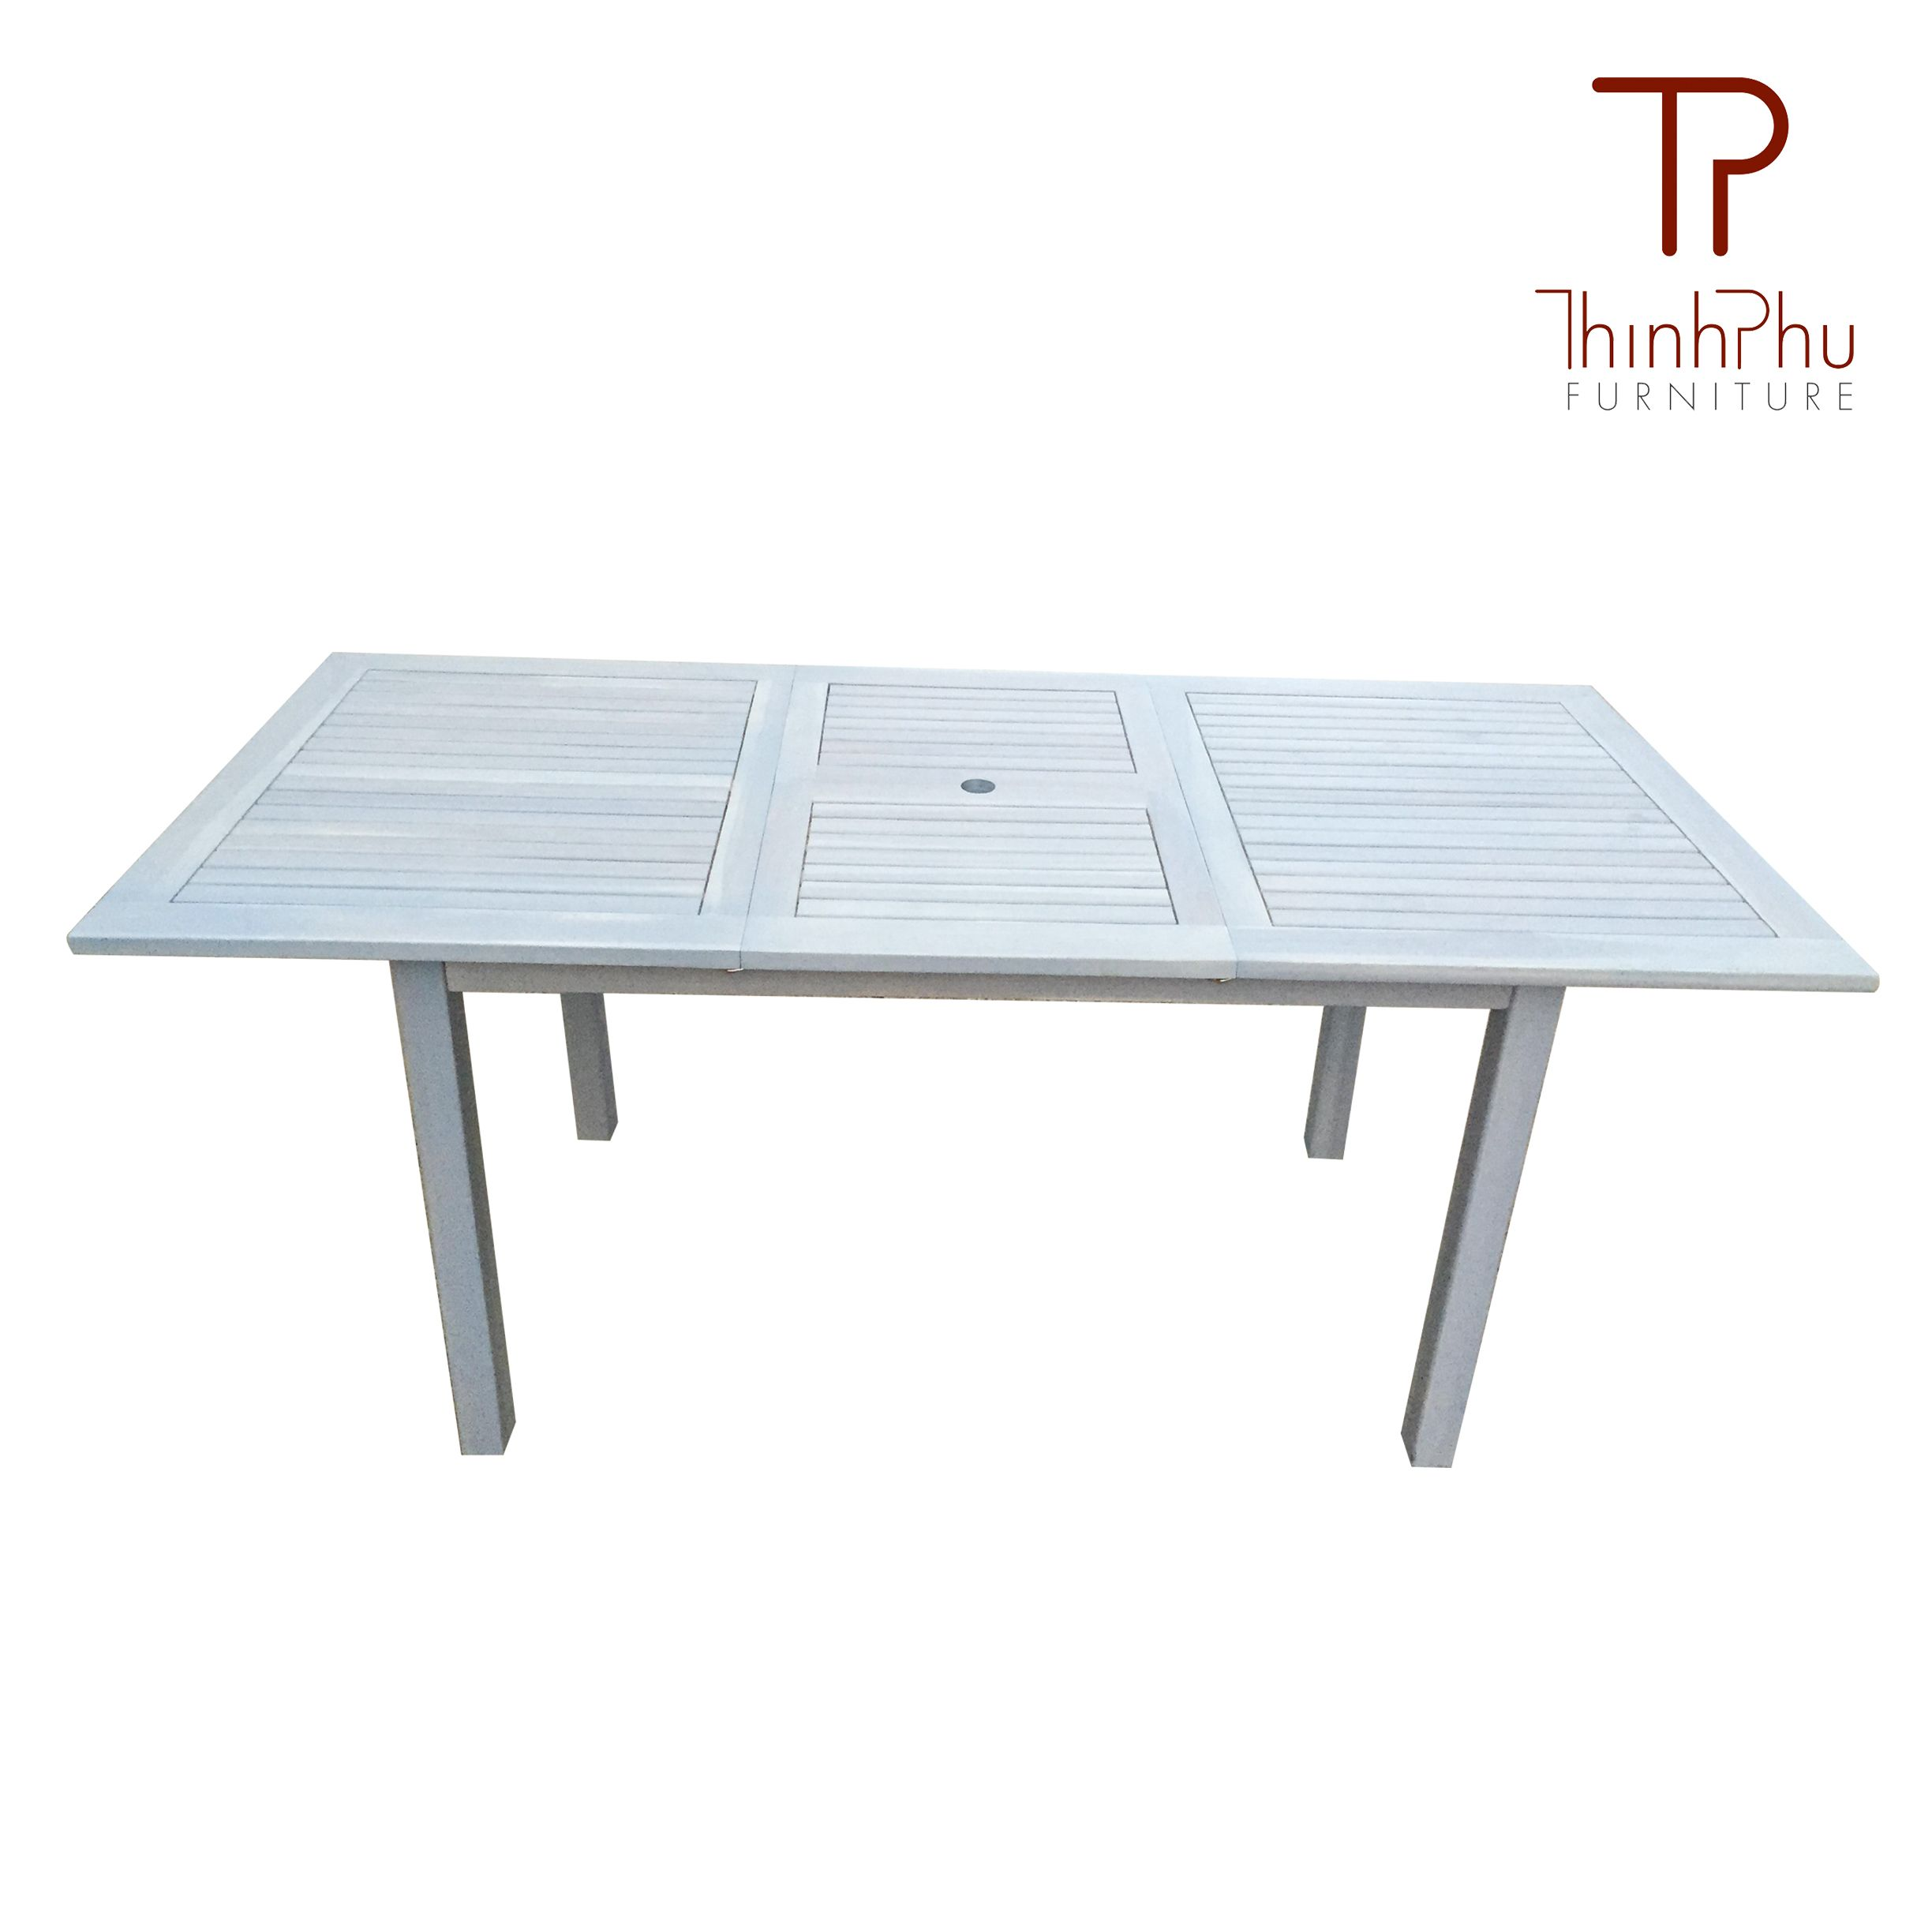 Extension Table Extengy Outdoor And Garden Furniture Pinterest  # Muebles Tubulares Beta